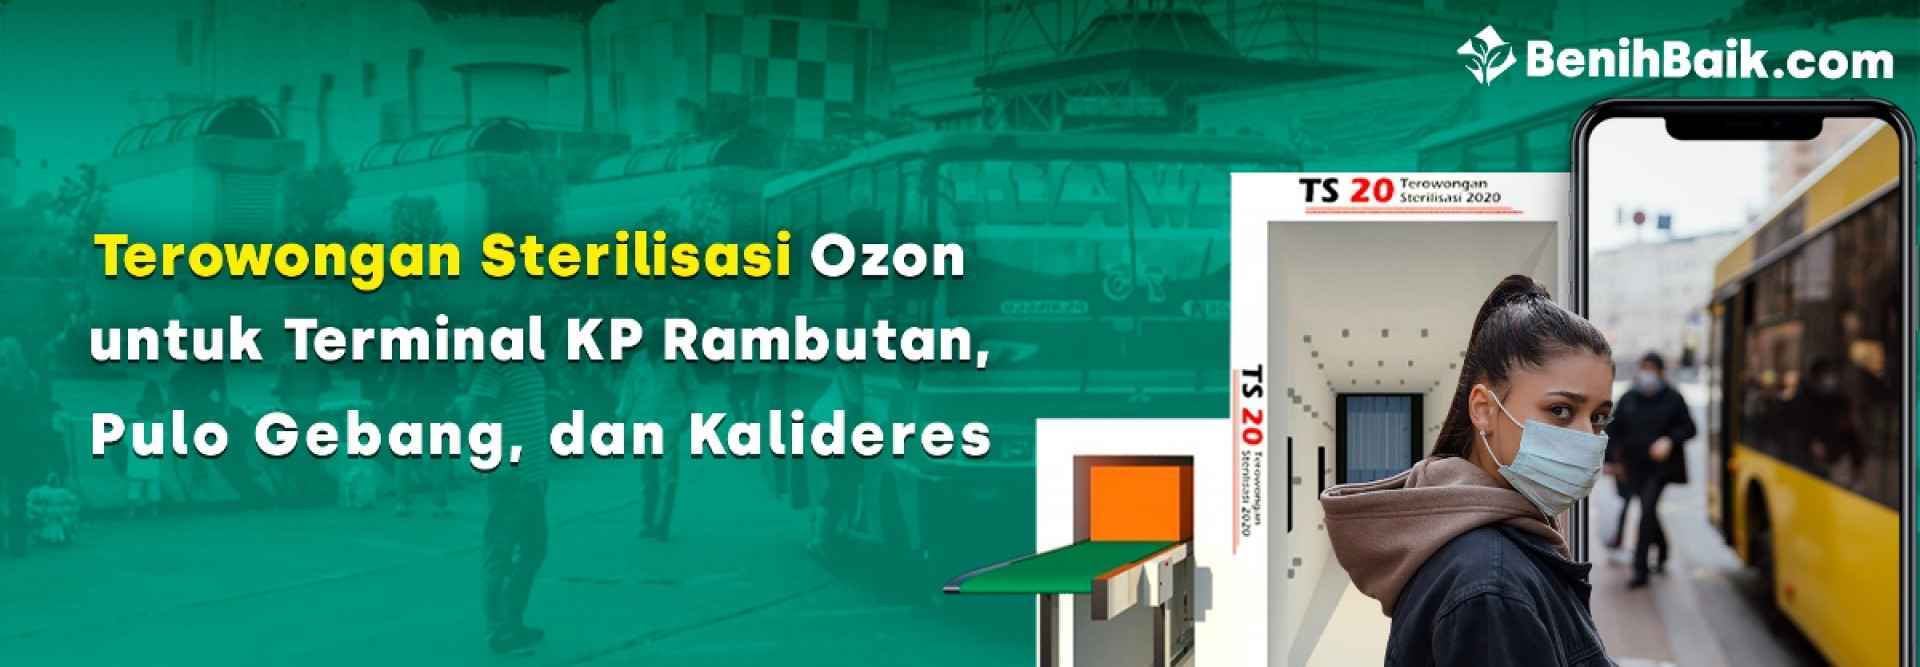 Campaign cover image